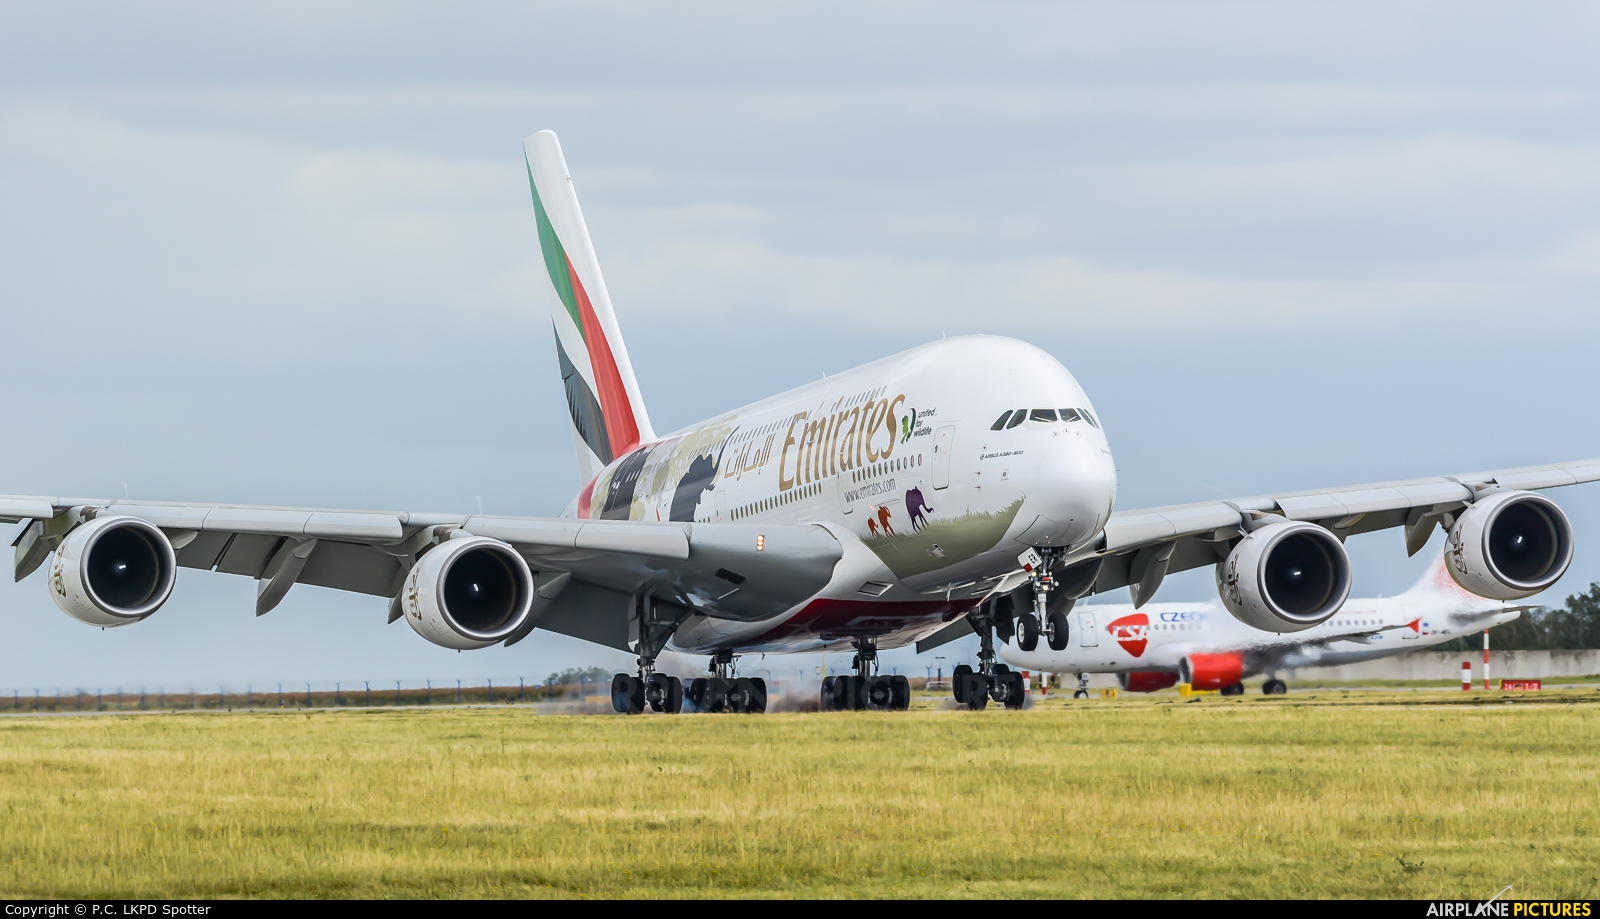 Emirates Airlines A6-EER aircraft at Prague - Václav Havel